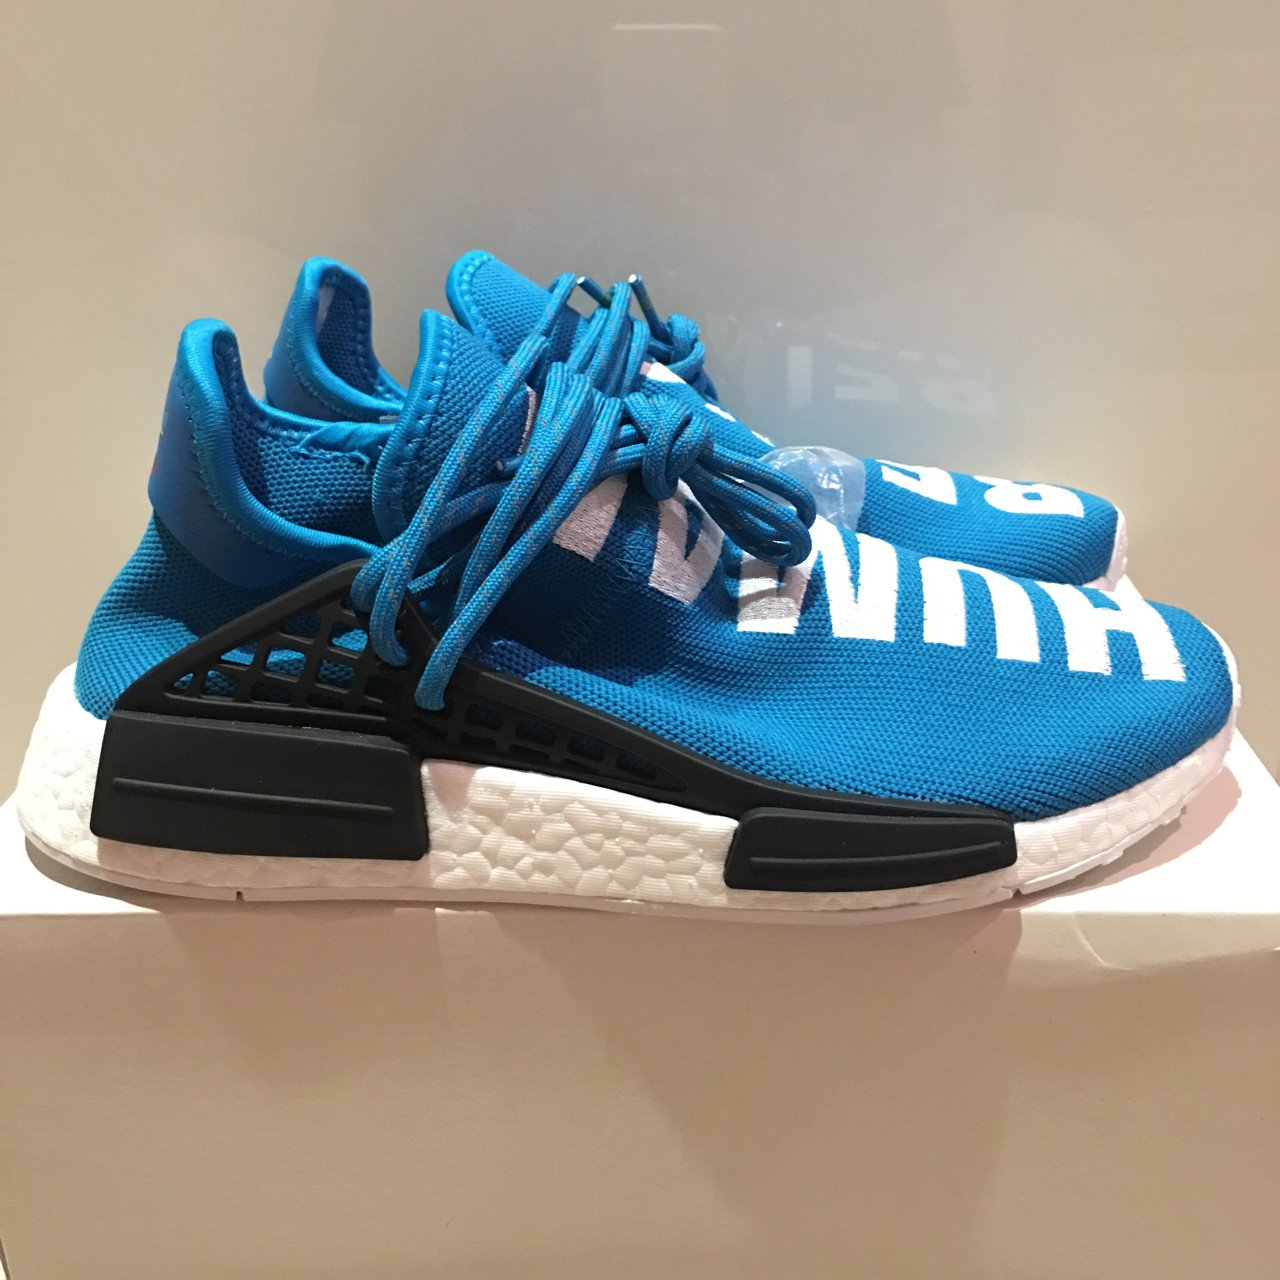 cd33413f94355 Adidas nmd human race blue uk7 Dswt and receipts Prefer to - Depop